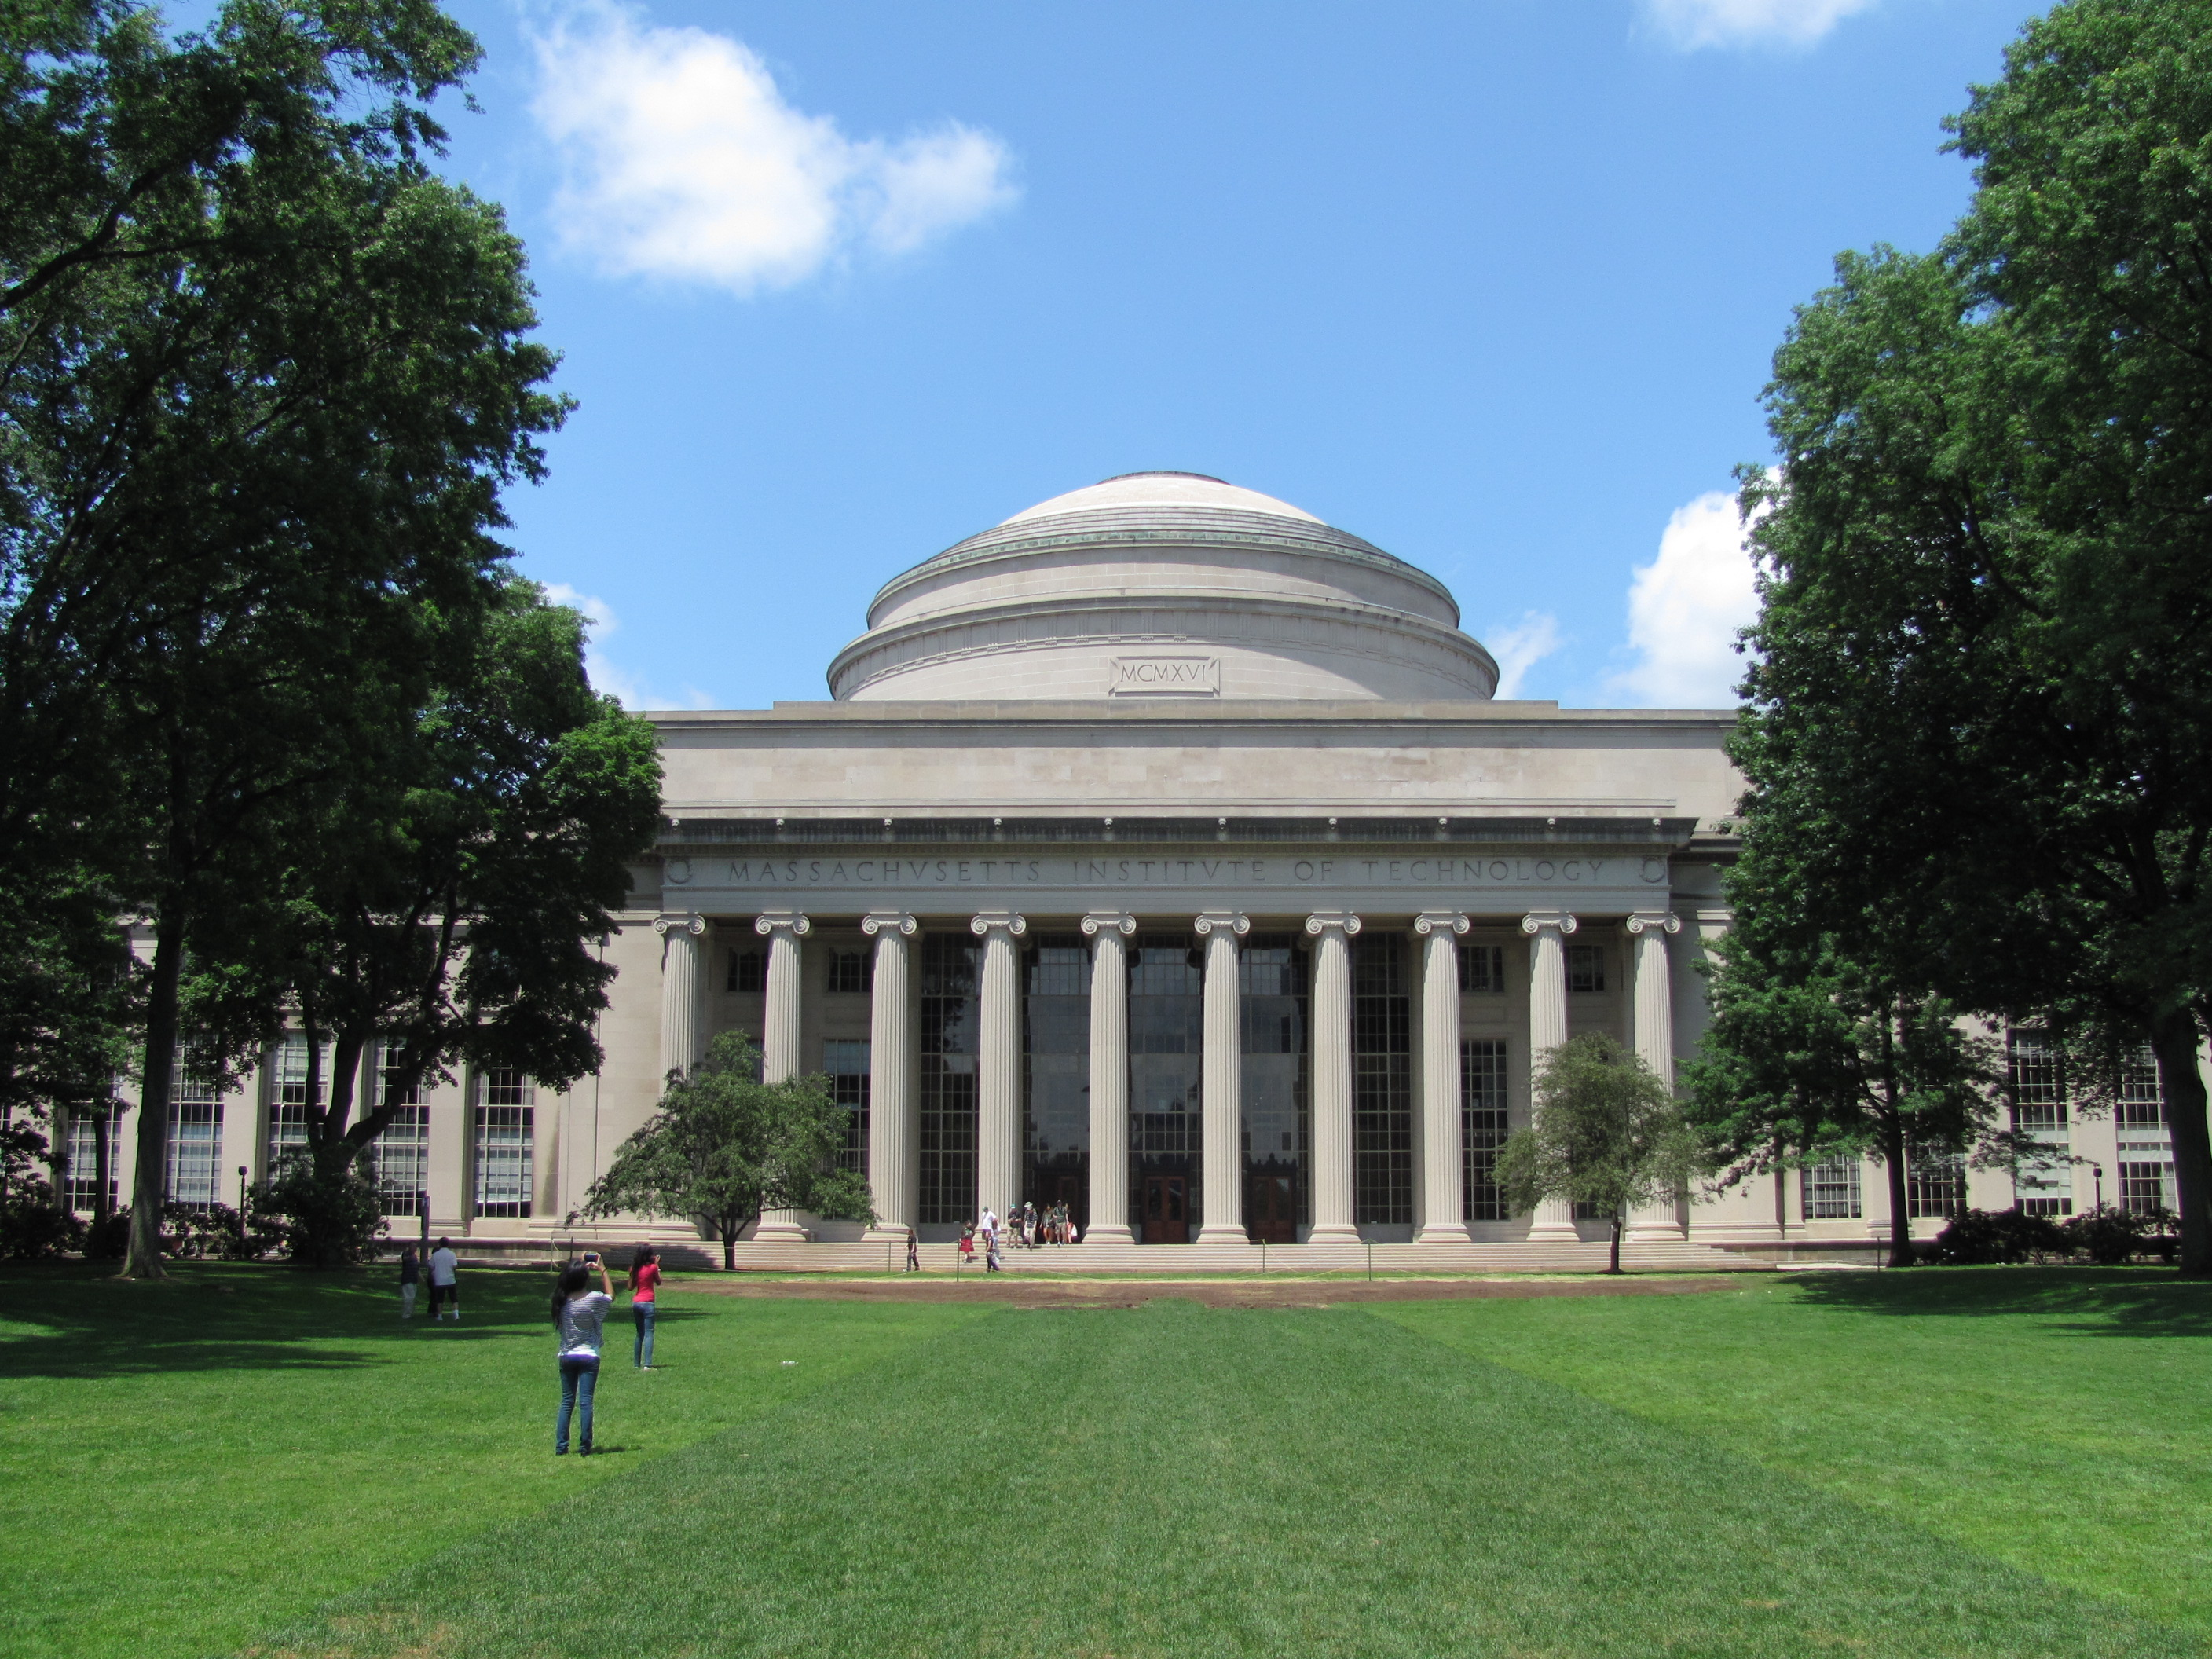 A History Of Massachusetts Institute Of Technology In 1 Minute